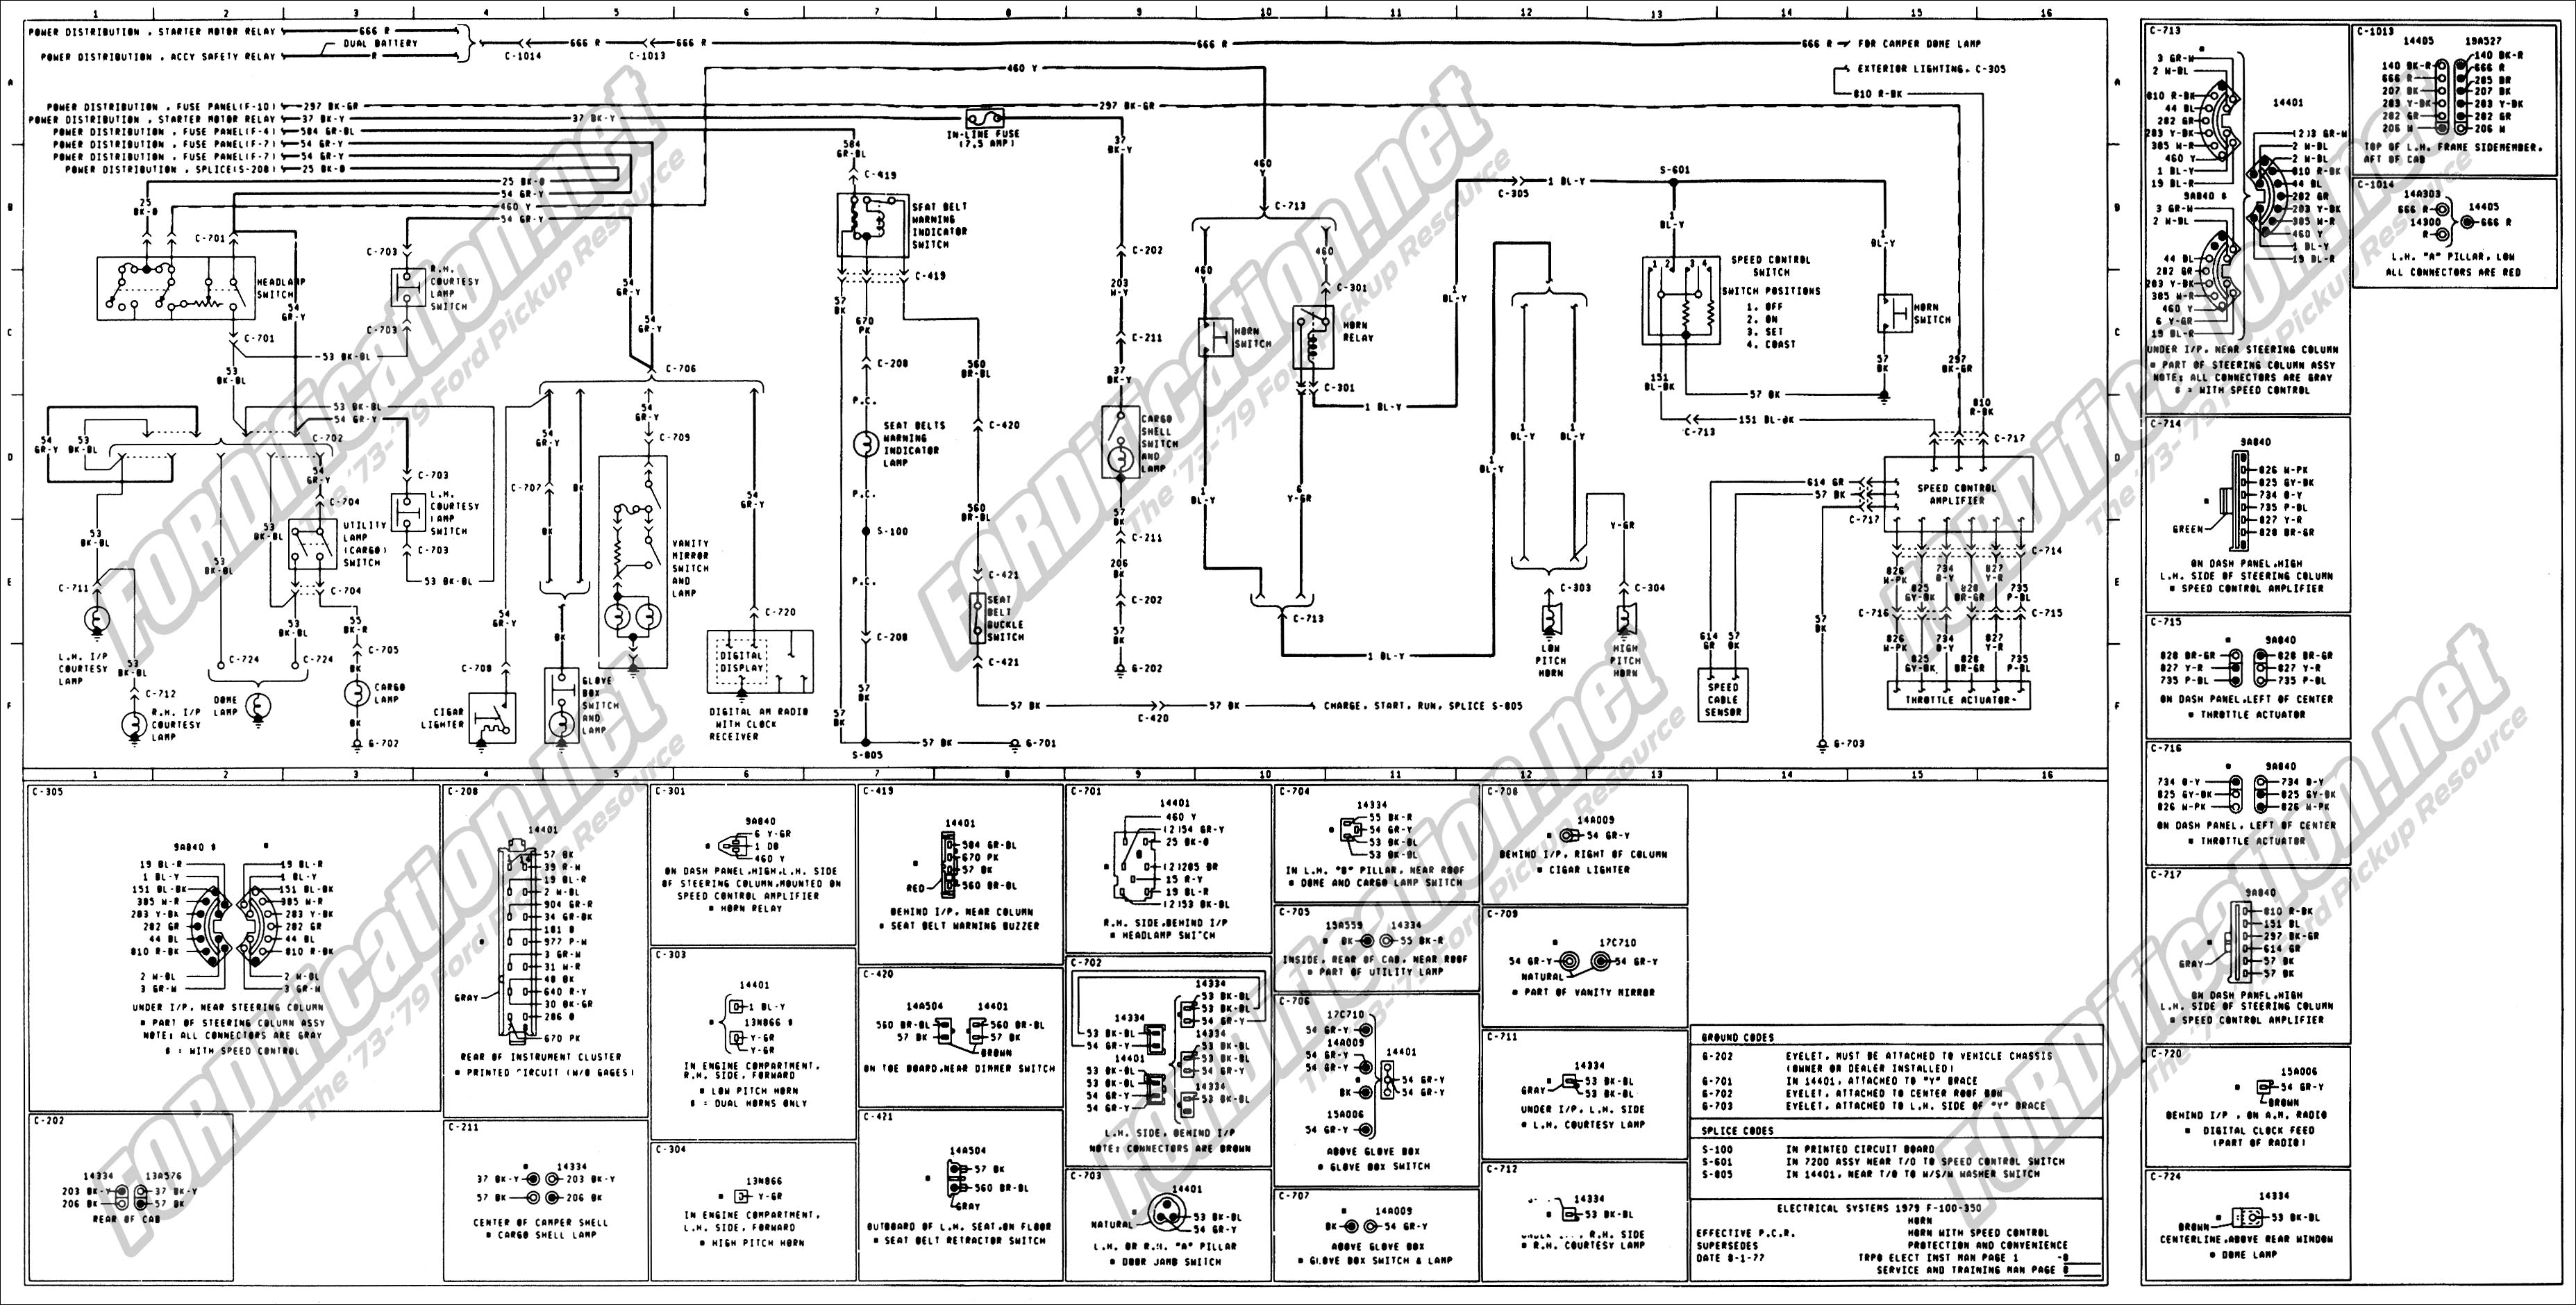 1973 1979 ford truck wiring diagrams schematics fordification net rh fordification net 1974 ford courier wiring diagram 1974 ford courier wiring diagram